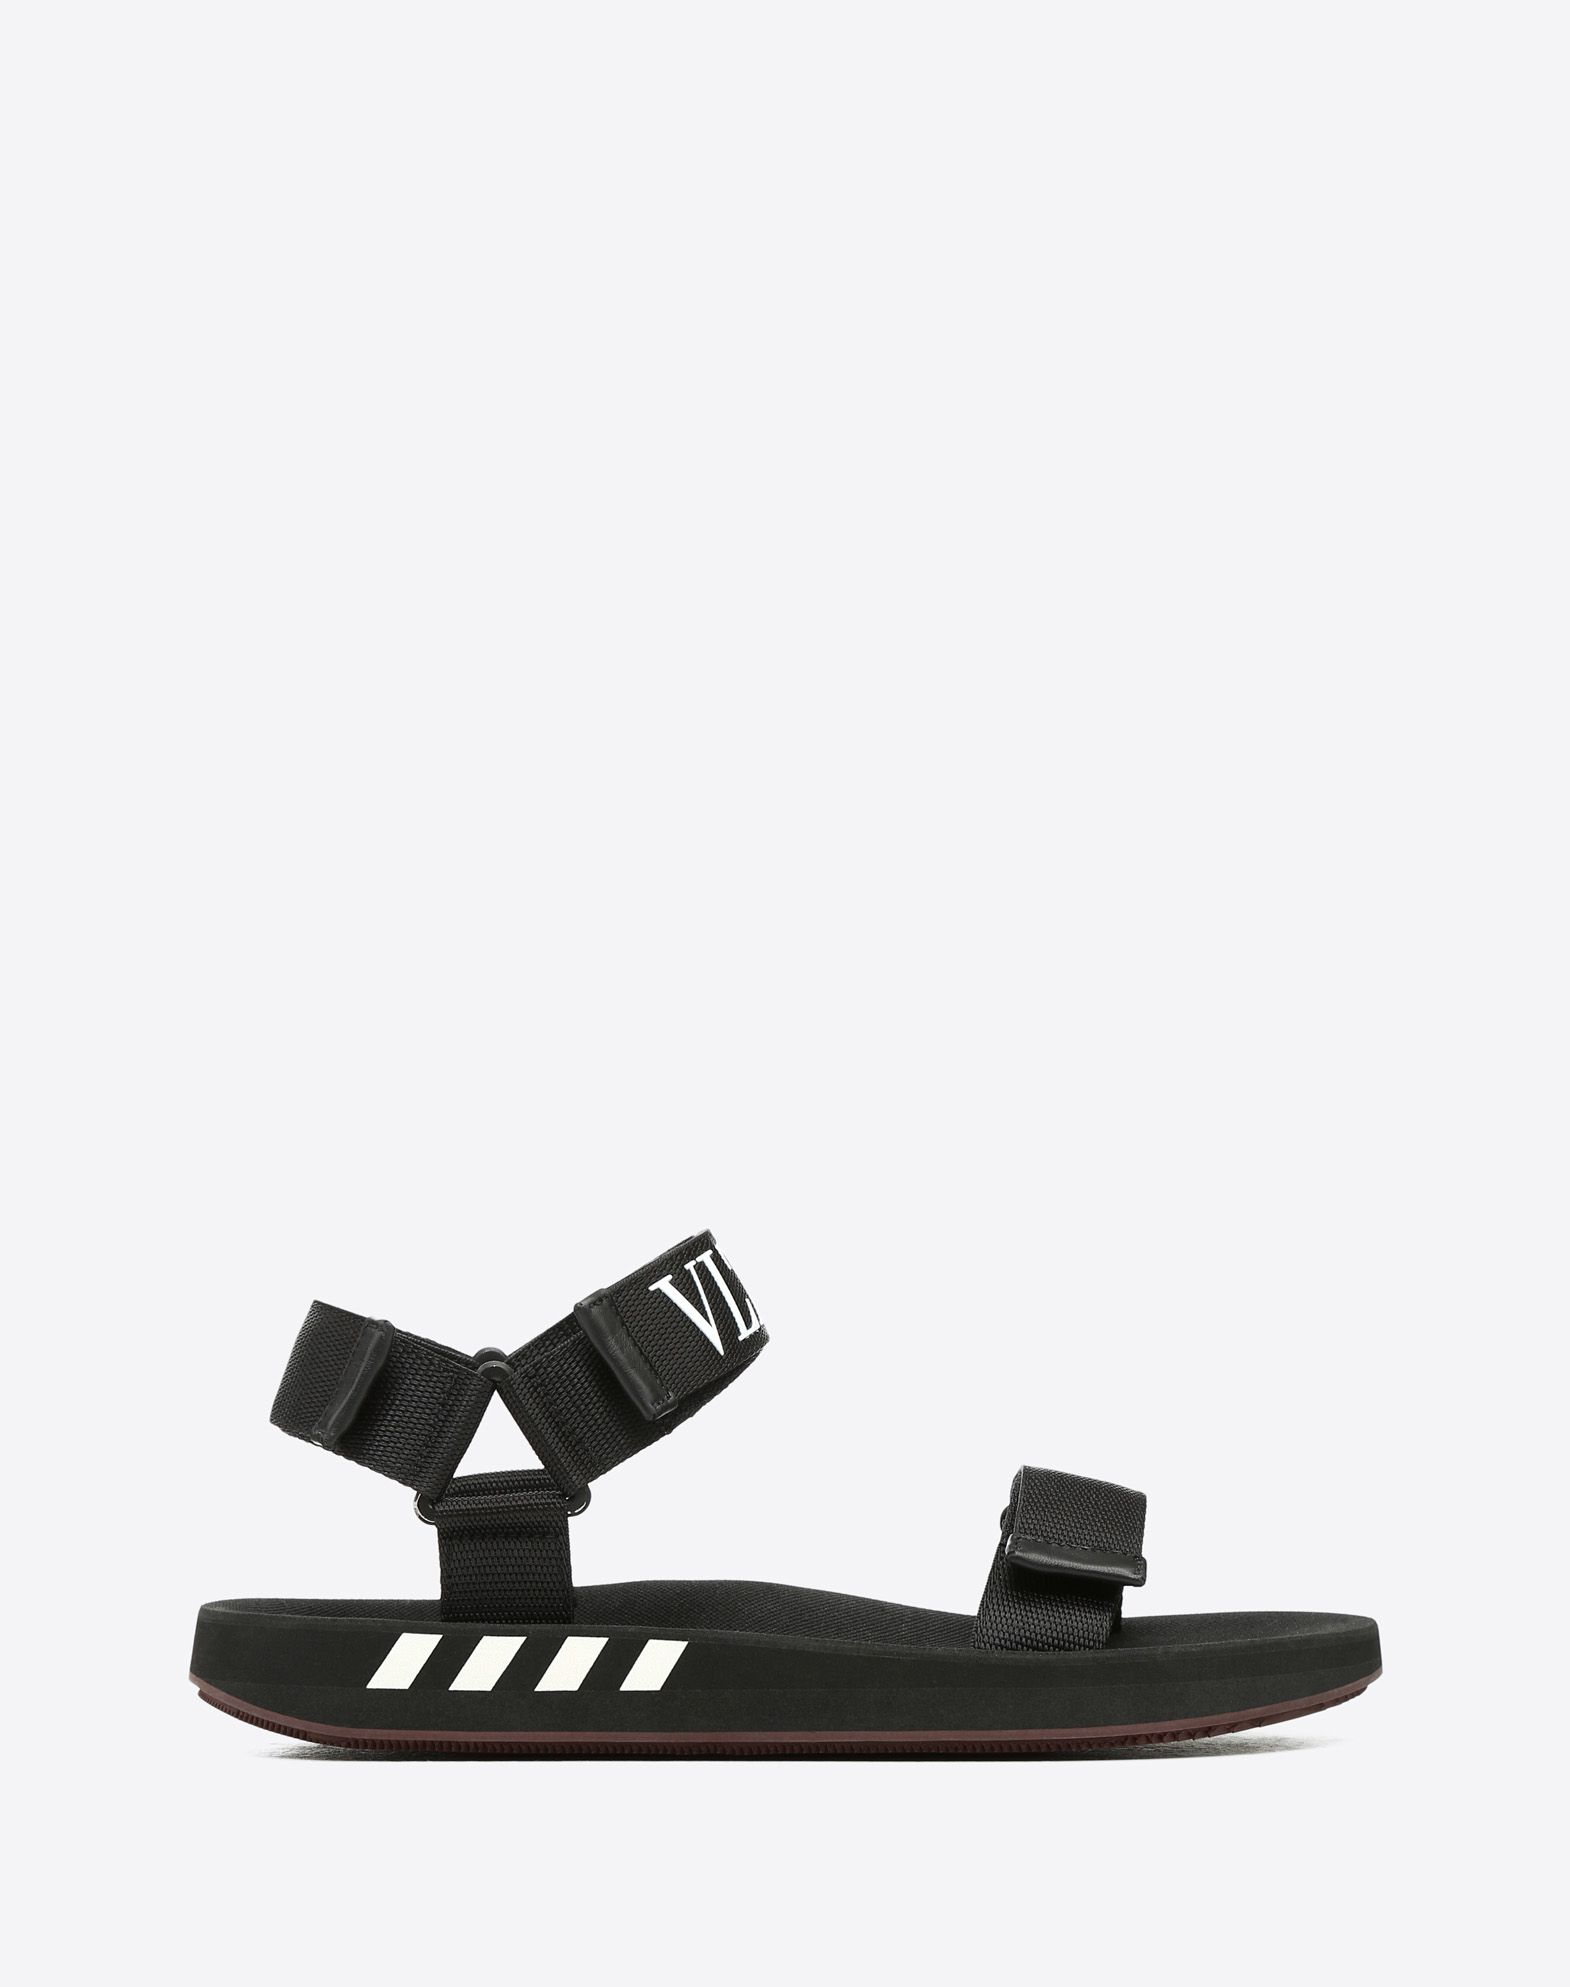 NAPPA LEATHER SANDAL WITH VLTN BAND